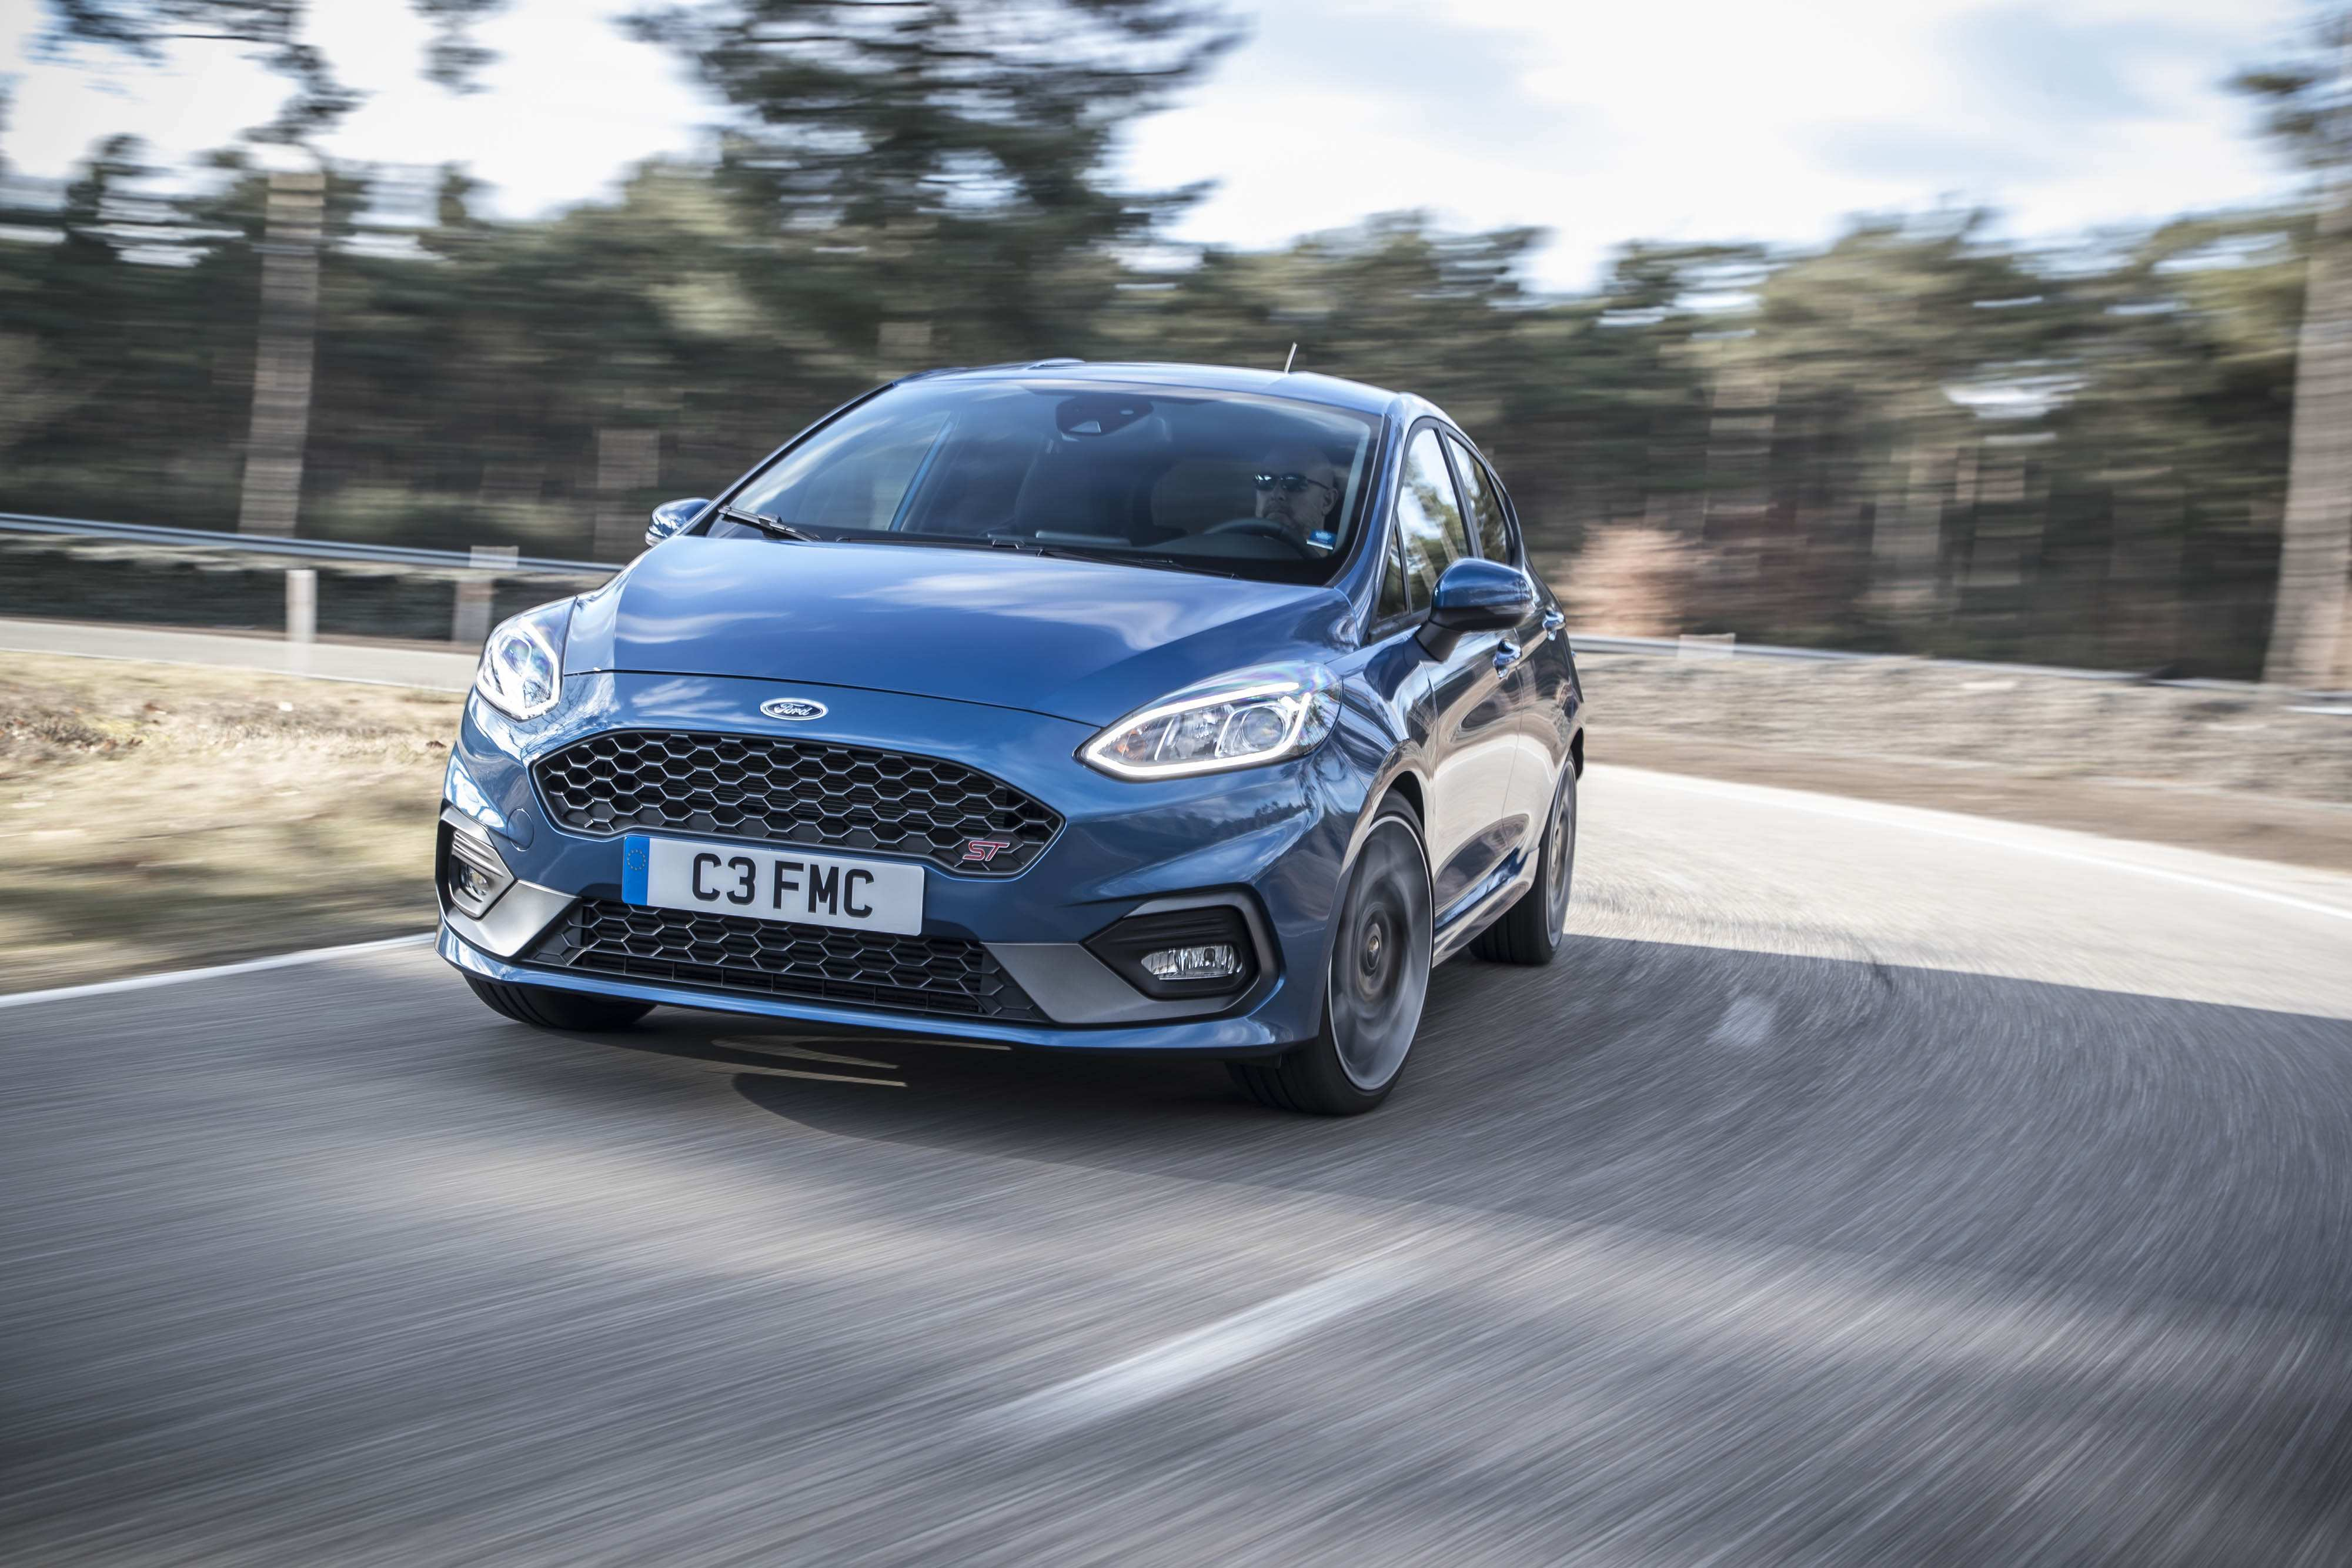 87 All New 2020 Ford Fiesta St Rs Redesign And Concept